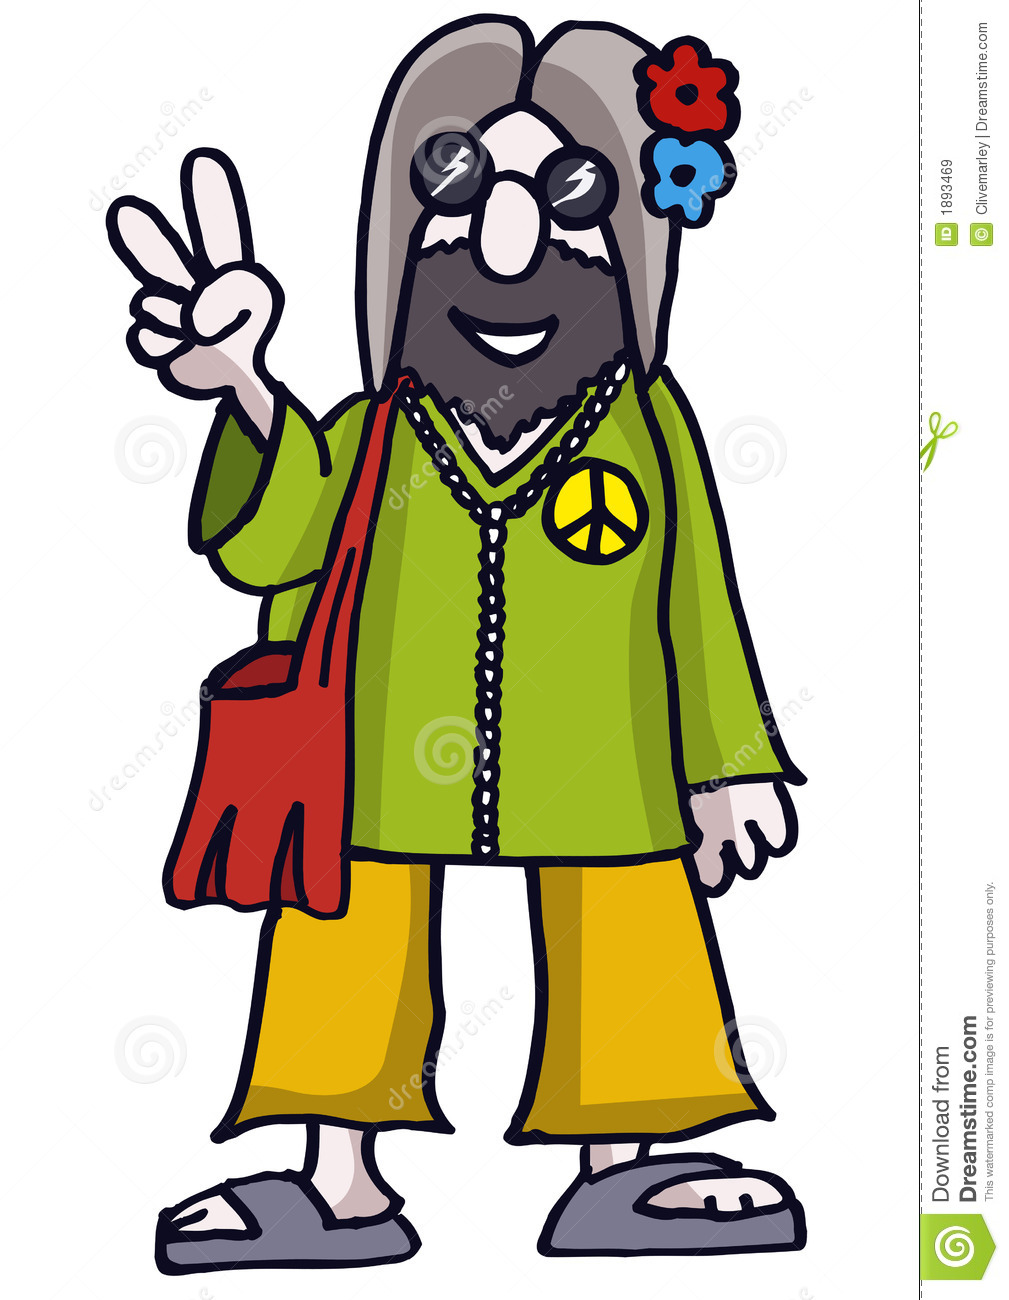 Clipart coms pictures clipart royalty free Hippie Clipart | Free download best Hippie Clipart on ClipArtMag.com clipart royalty free